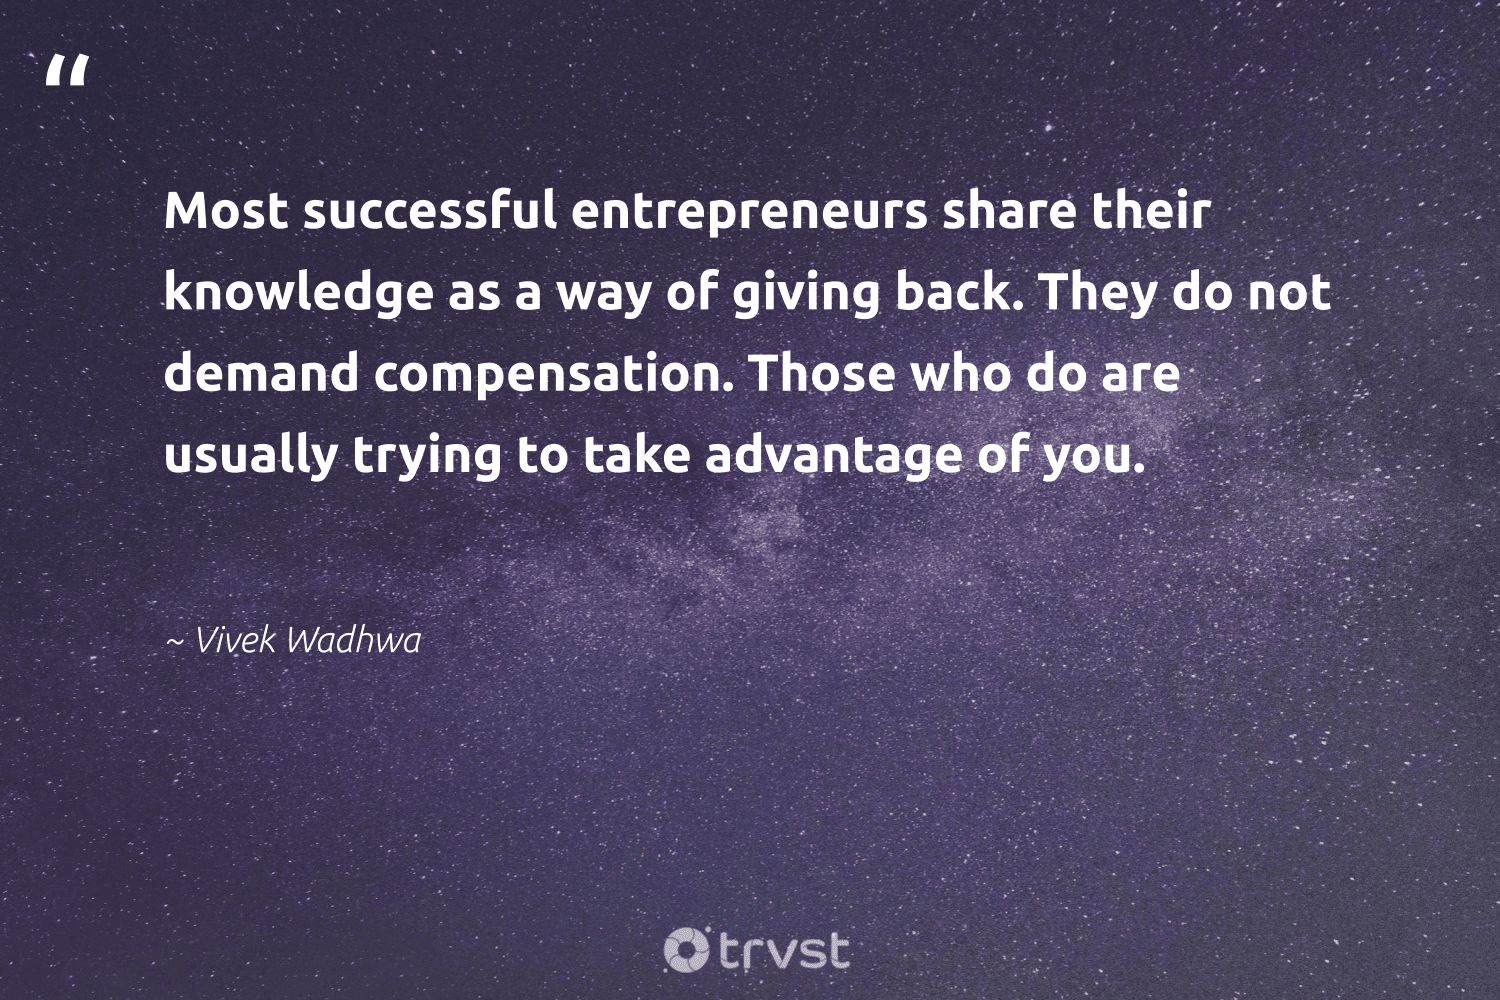 """""""Most successful entrepreneurs share their knowledge as a way of giving back. They do not demand compensation. Those who do are usually trying to take advantage of you.""""  - Vivek Wadhwa #trvst #quotes #givingback #dogood #socialgood #giveforthefuture #changemakers #dosomething #giveback #togetherwecan #itscooltobekind #beinspired"""